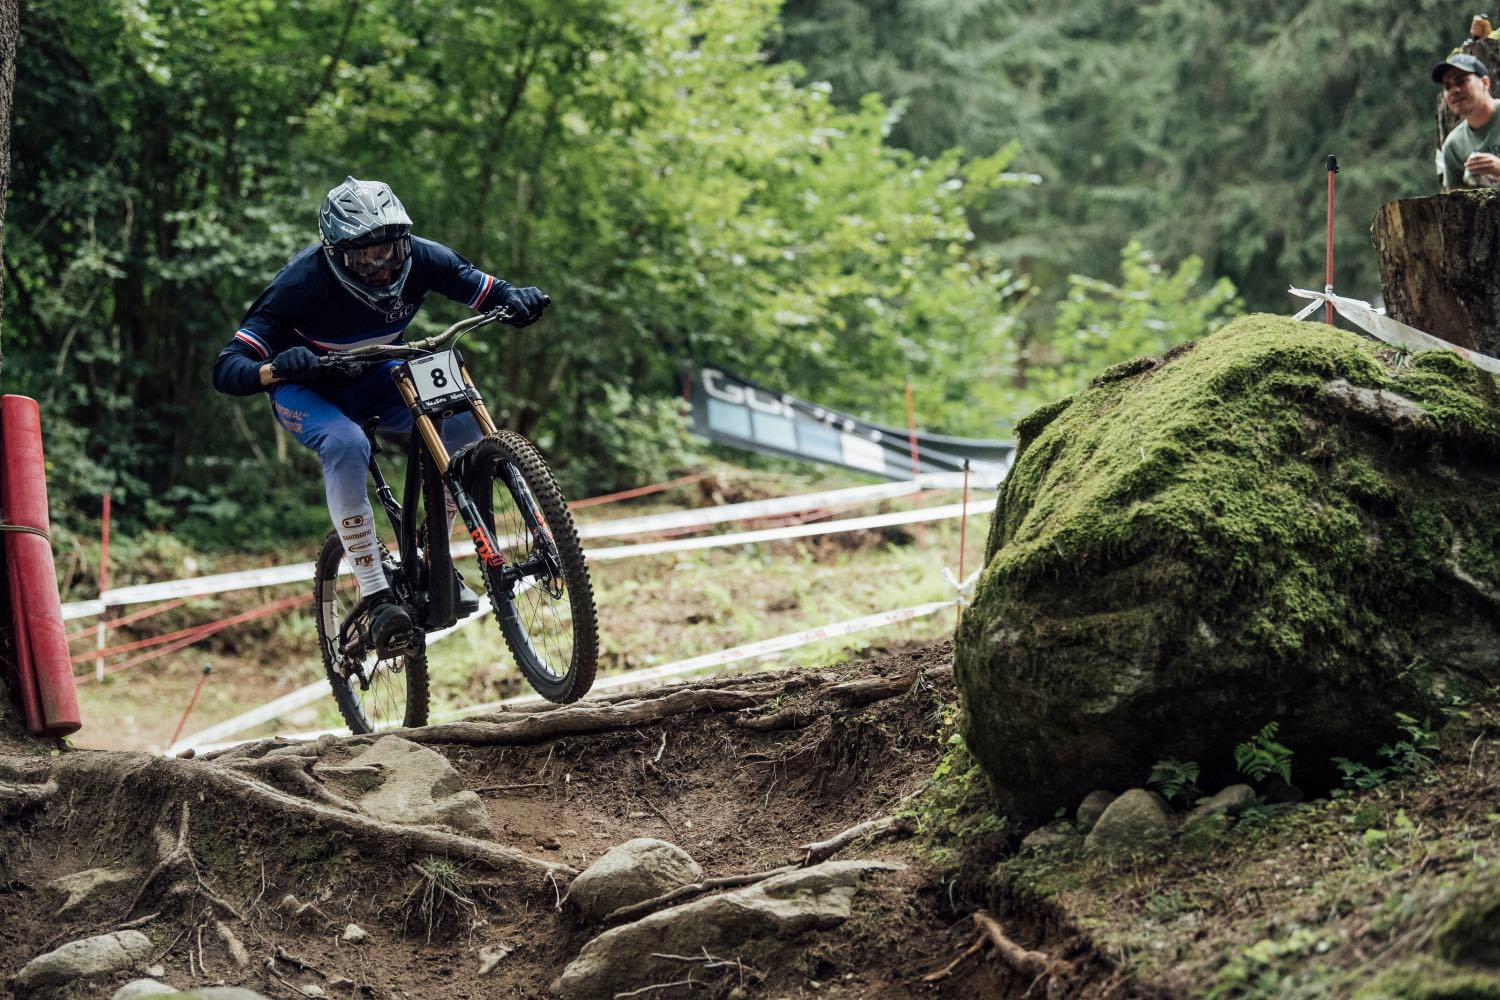 Benoit Coulanges competing at the 2021 UCI Downhill MTB World Championships